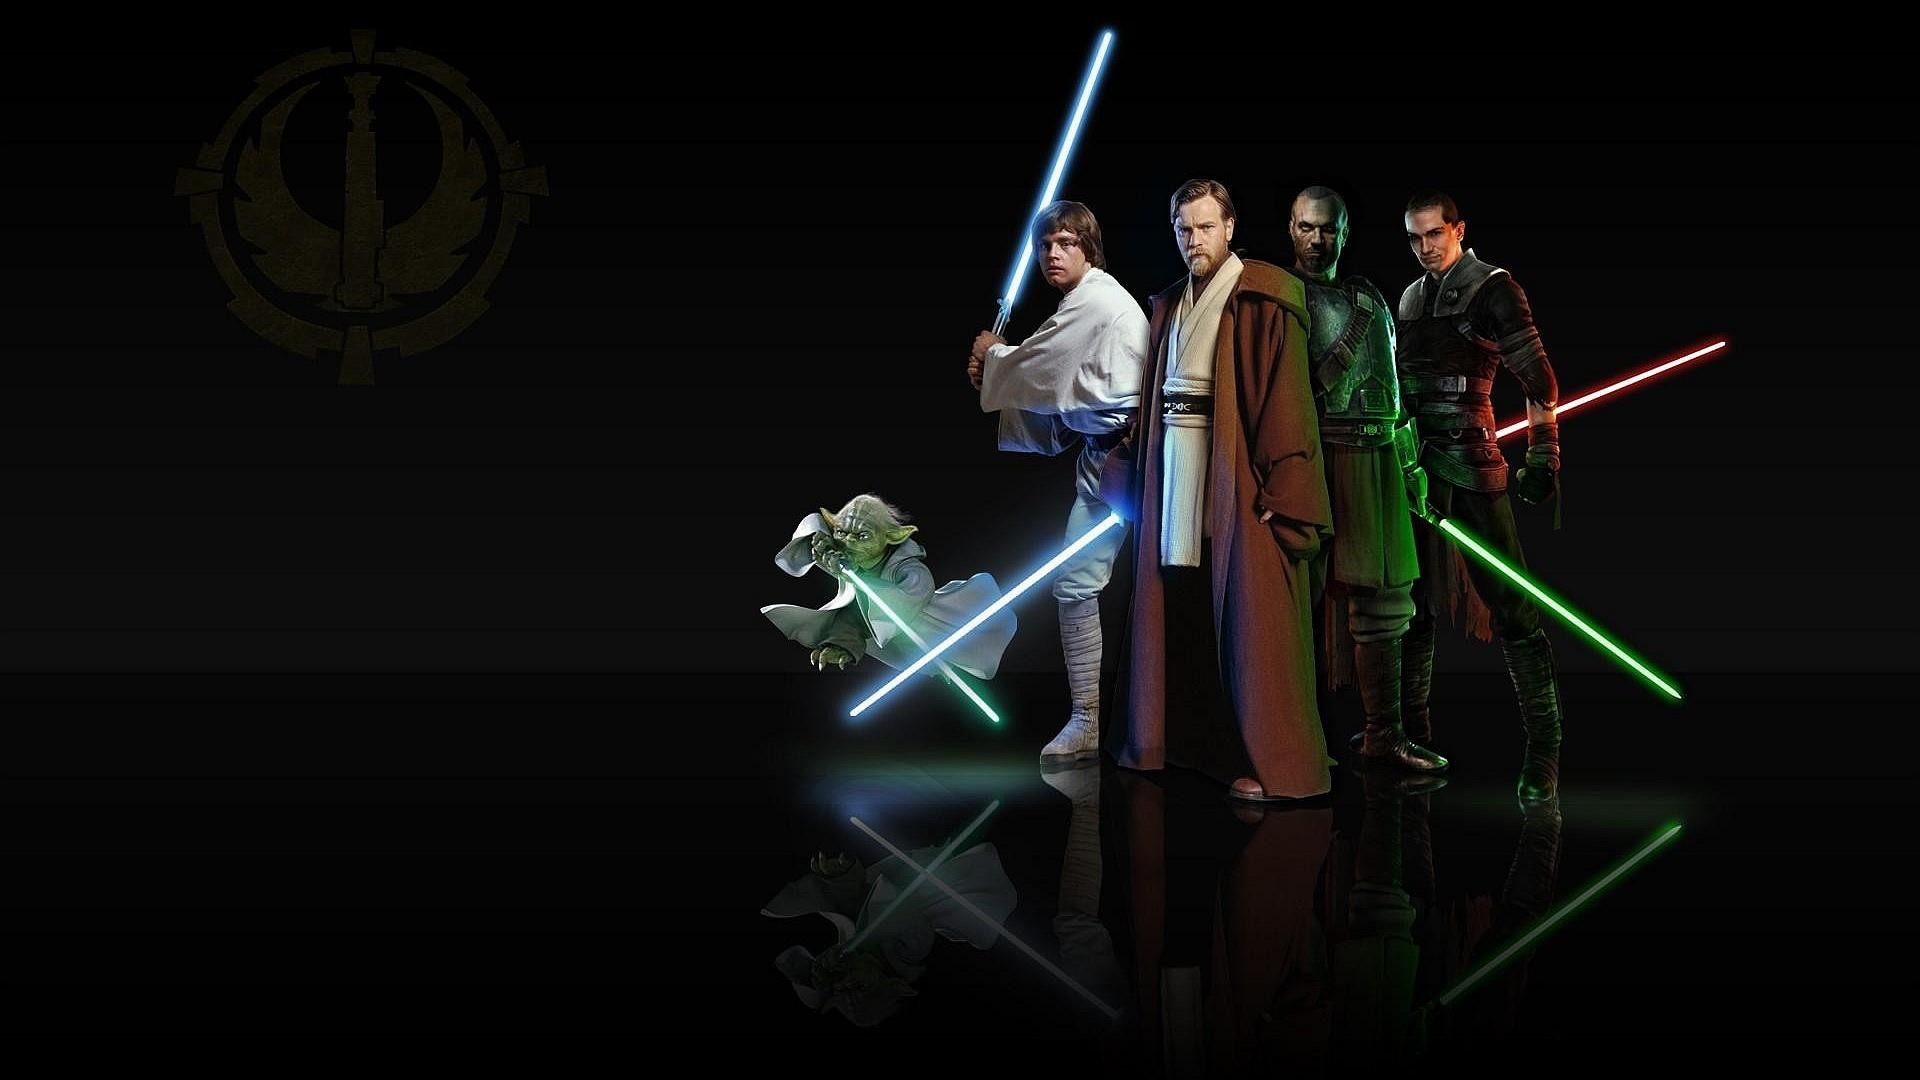 Main-Charaters-Star-Wars-Movies